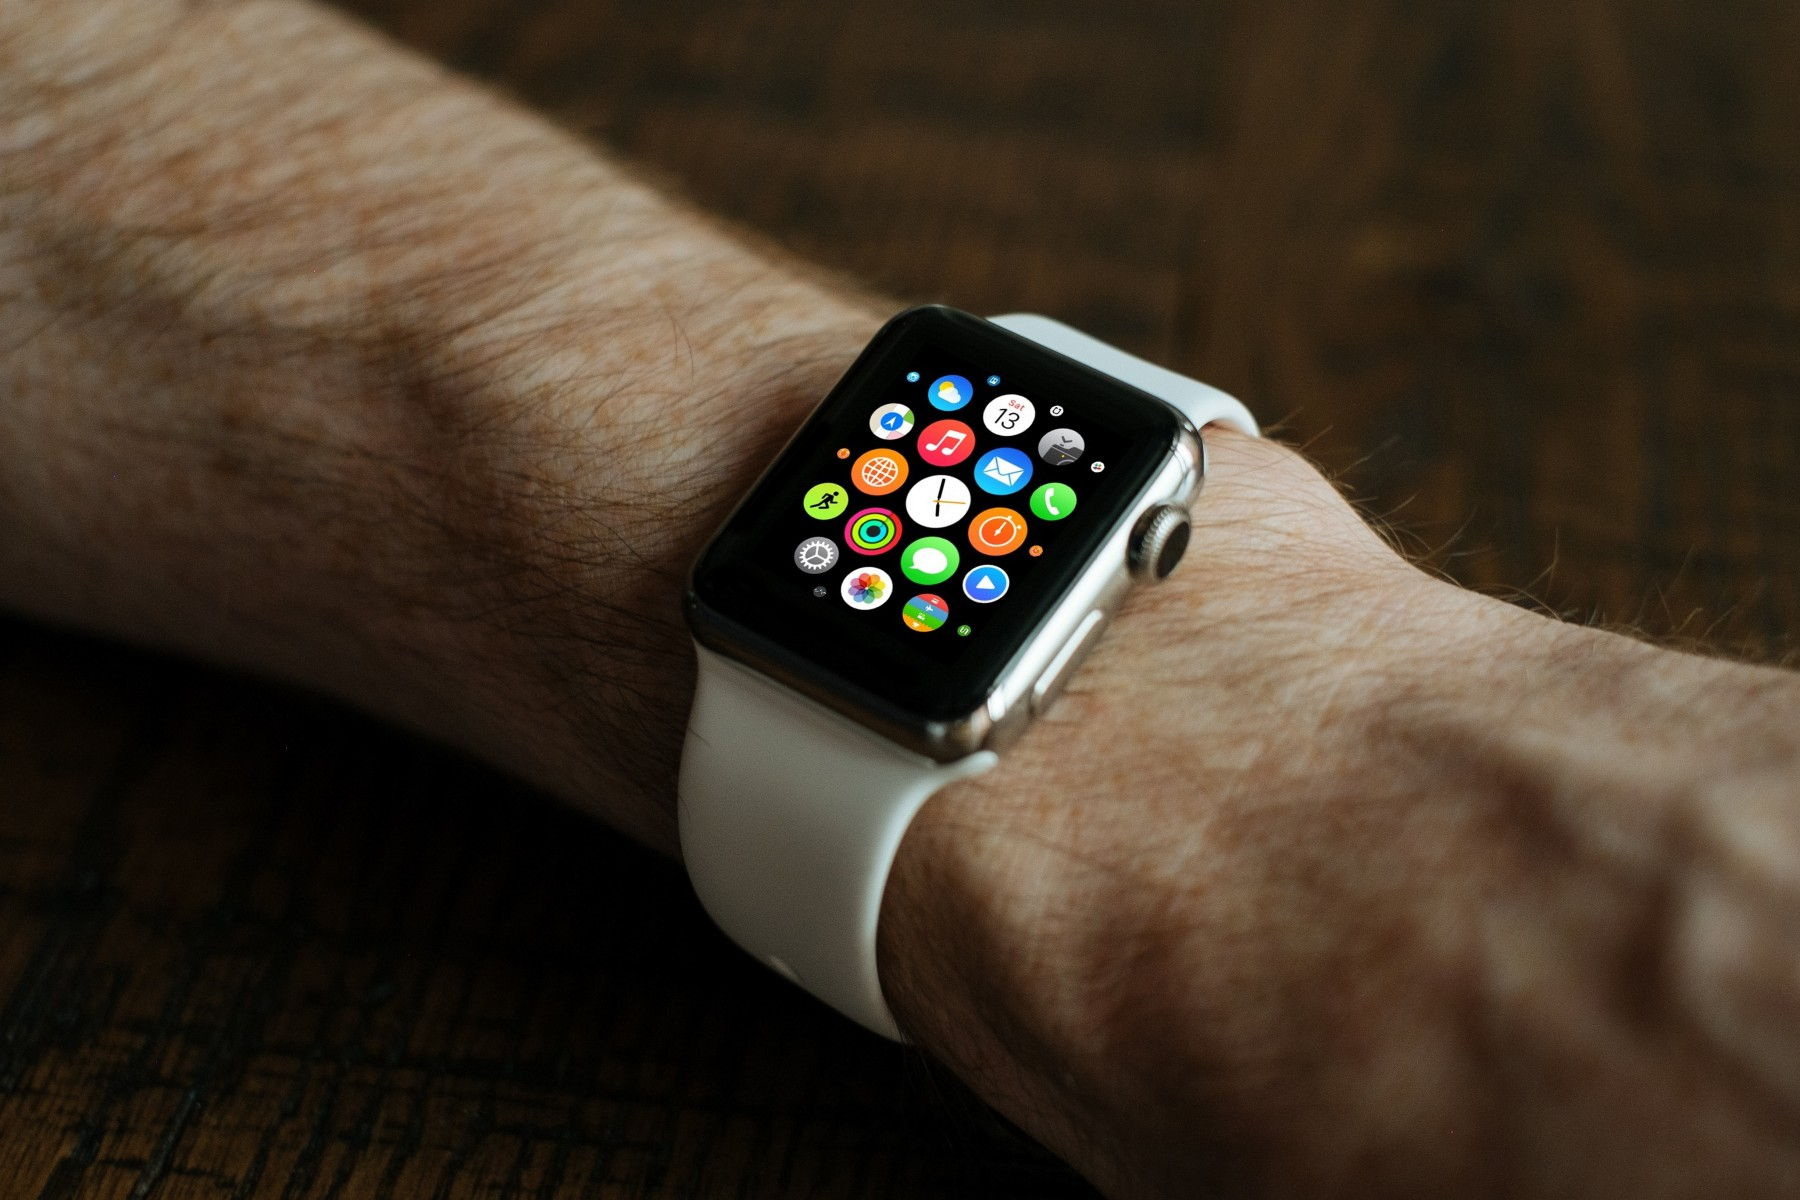 Apple's smartwatch - Lithium ion batteries are also used in wearable tech